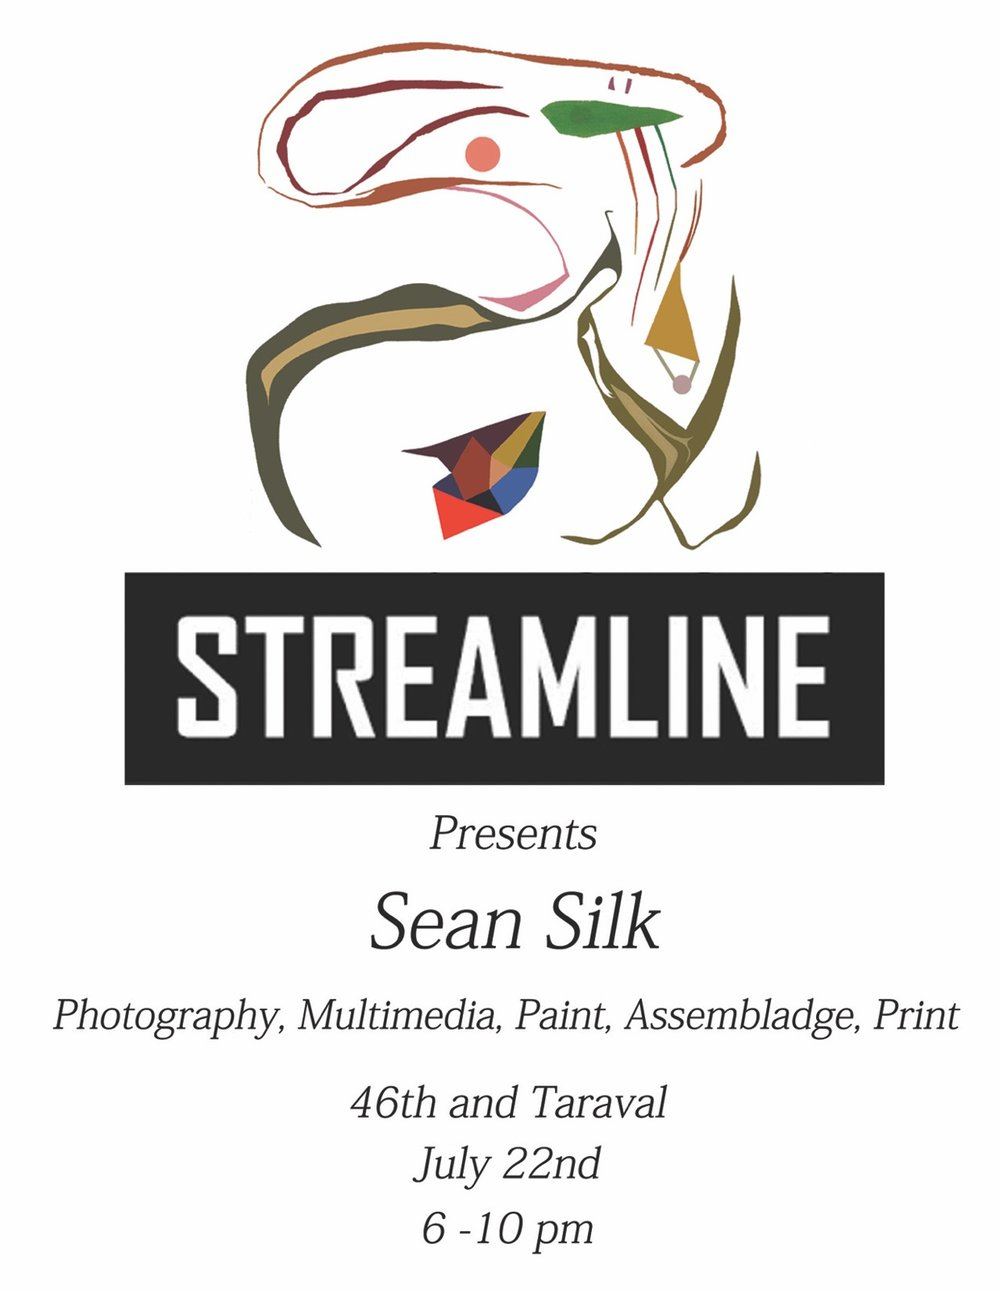 Sean Silk flyer.JPG